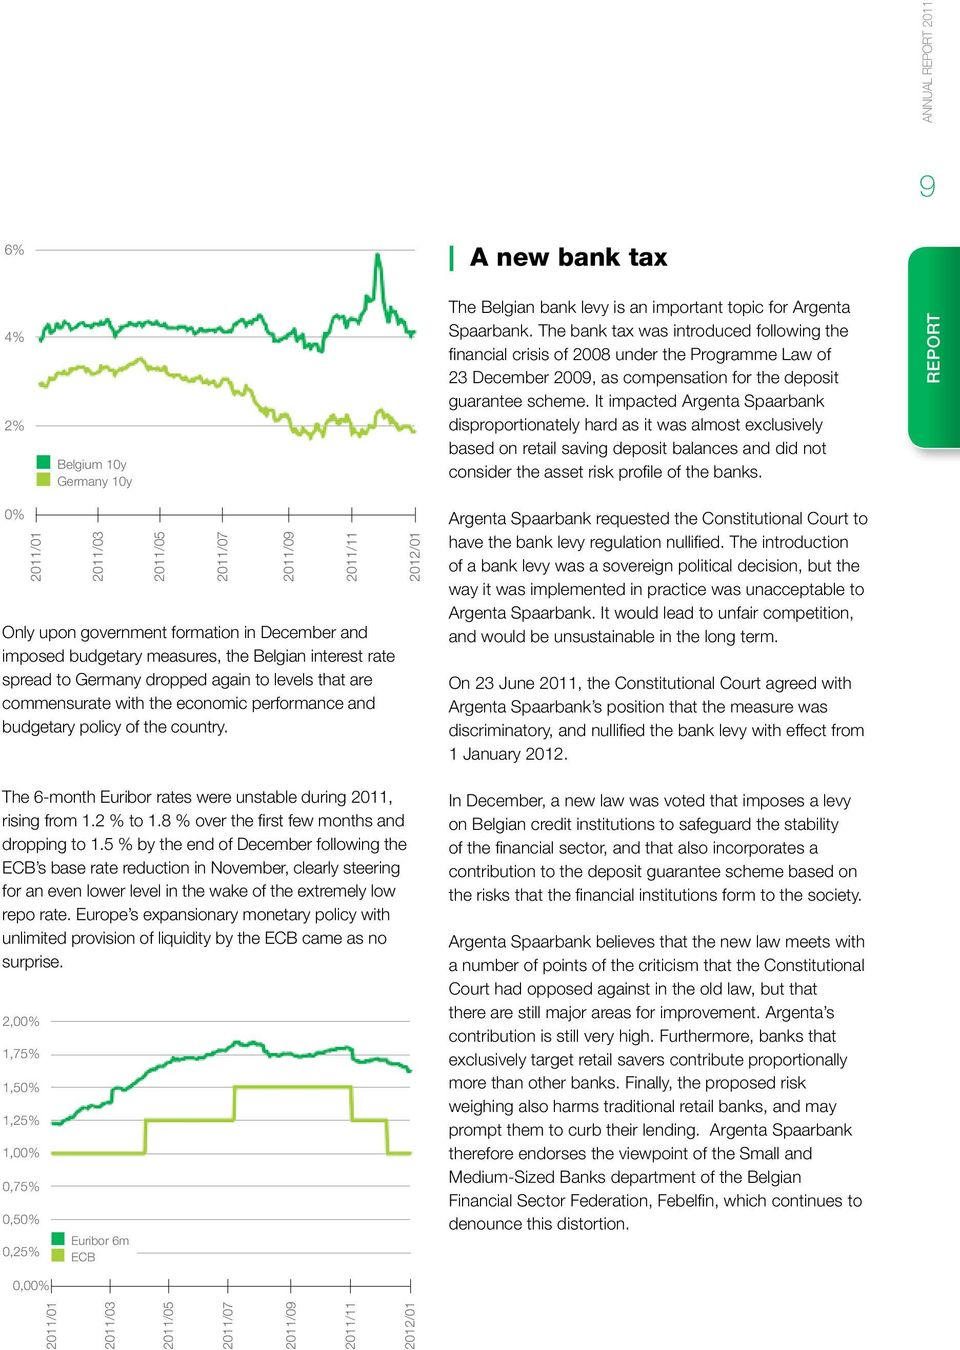 It impacted Argenta Spaarbank disproportionately hard as it was almost exclusively based on retail saving deposit balances and did not consider the asset risk profile of the banks.